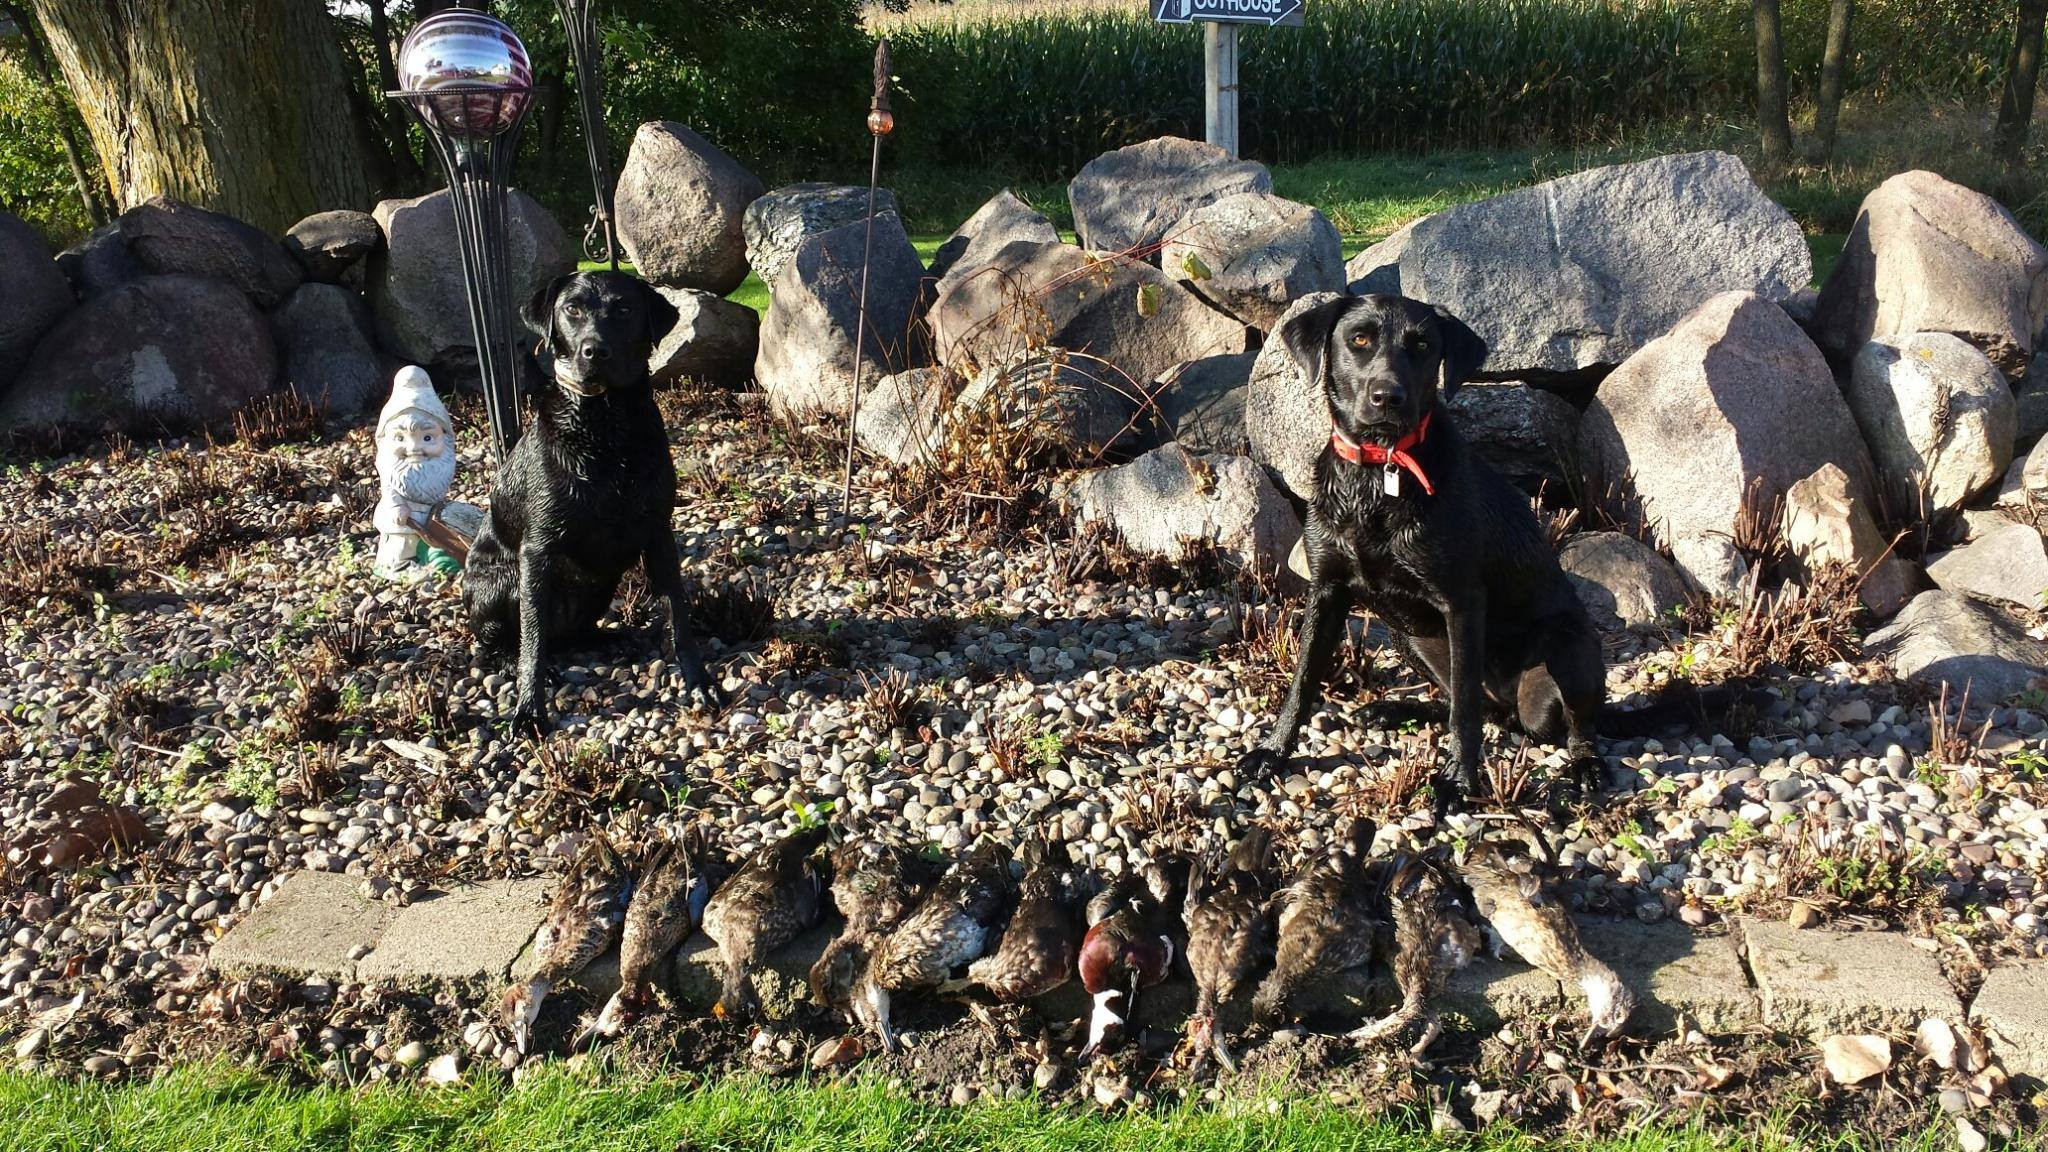 Neil, a labrador retriever trained at Northern Plains Retrievers, after a day of duck hunting